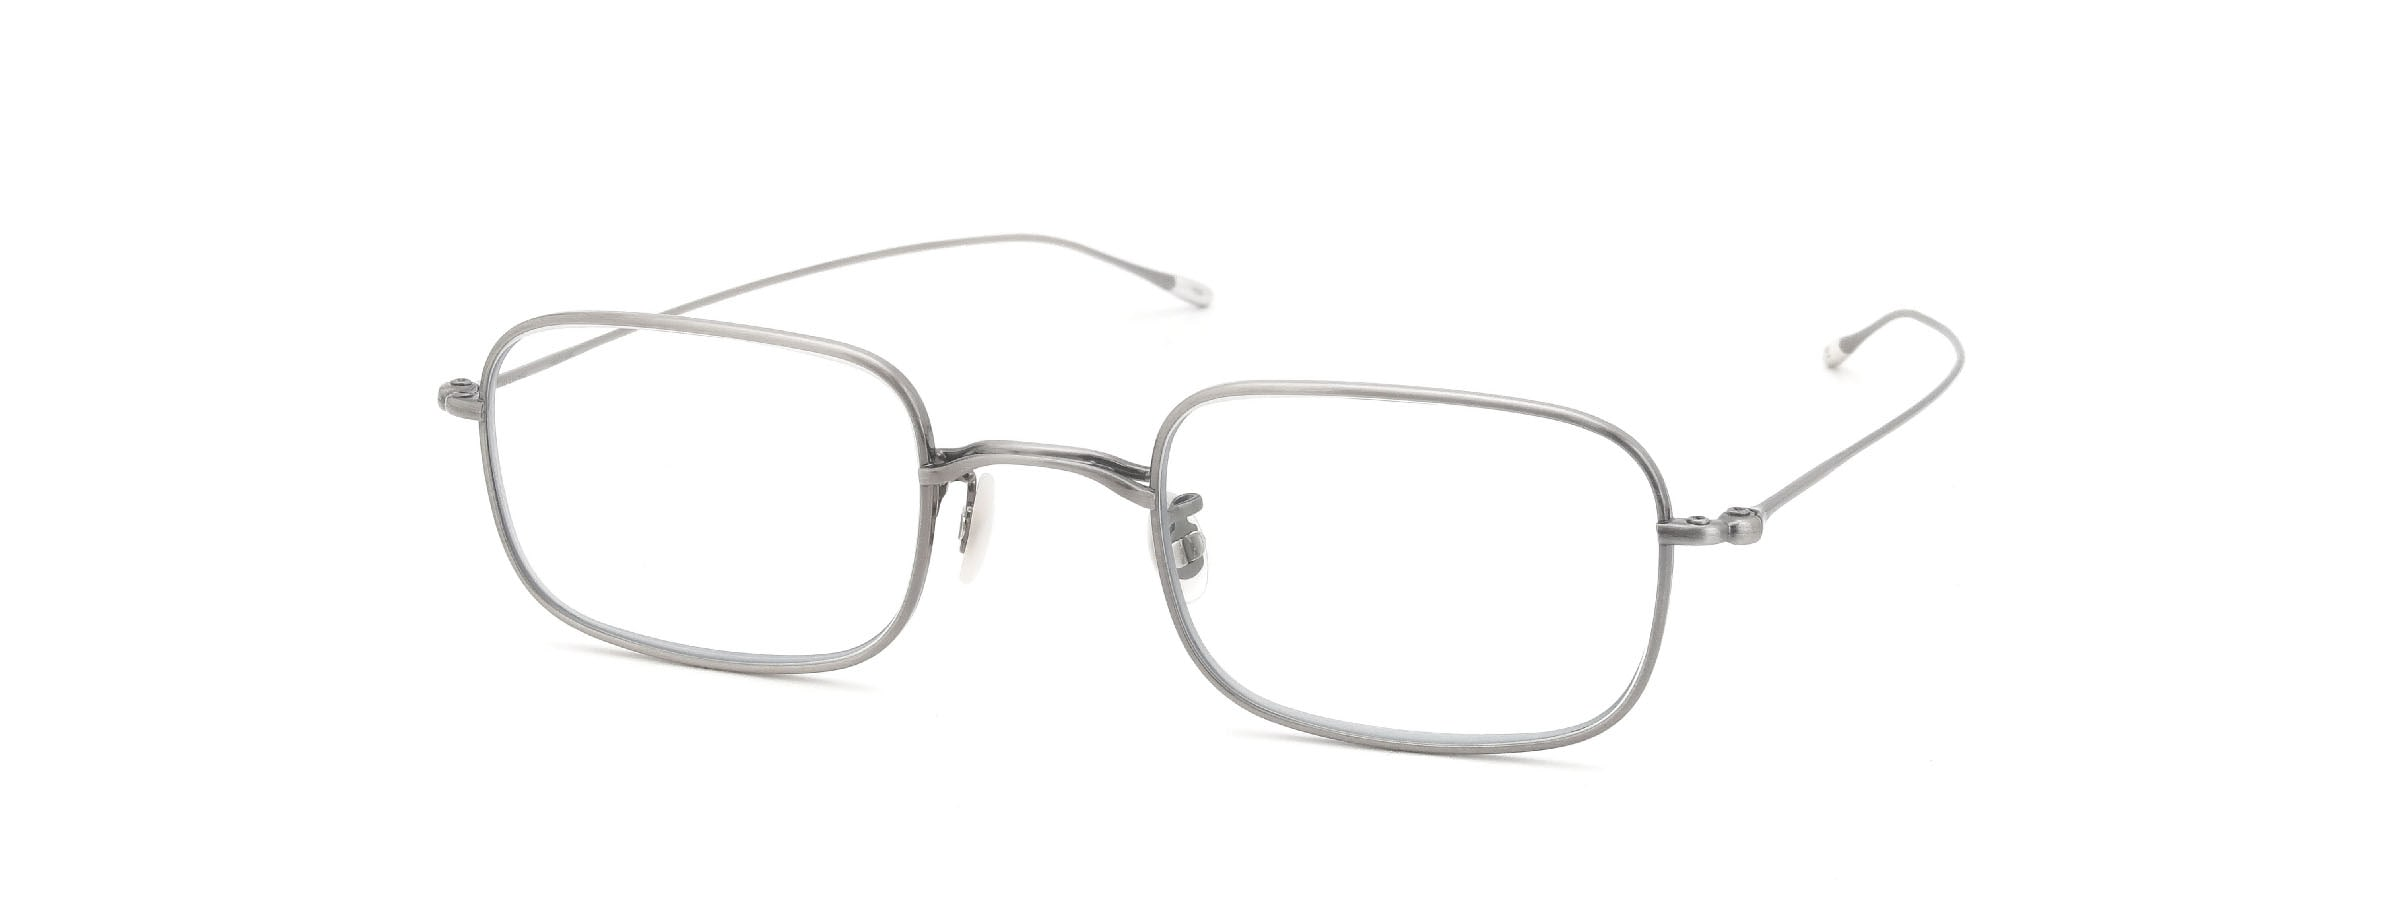 10 eyevan NO.8 47size 5S-CL Real Pewter全体像